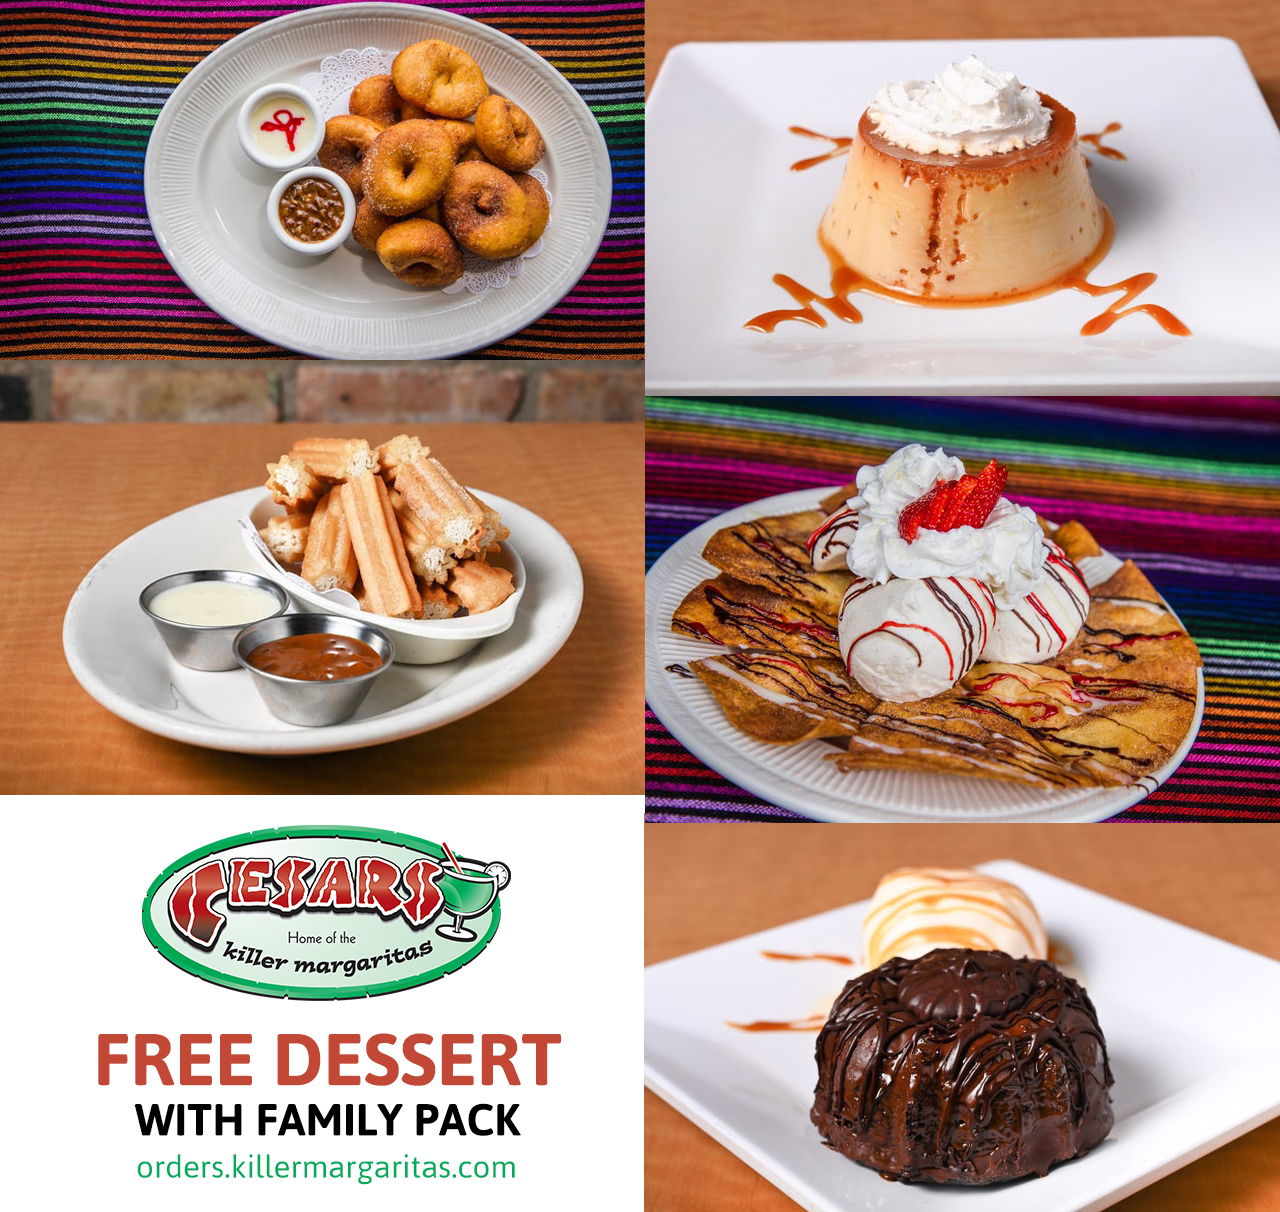 Get a free dessert with purchase of family pack when you order in our system